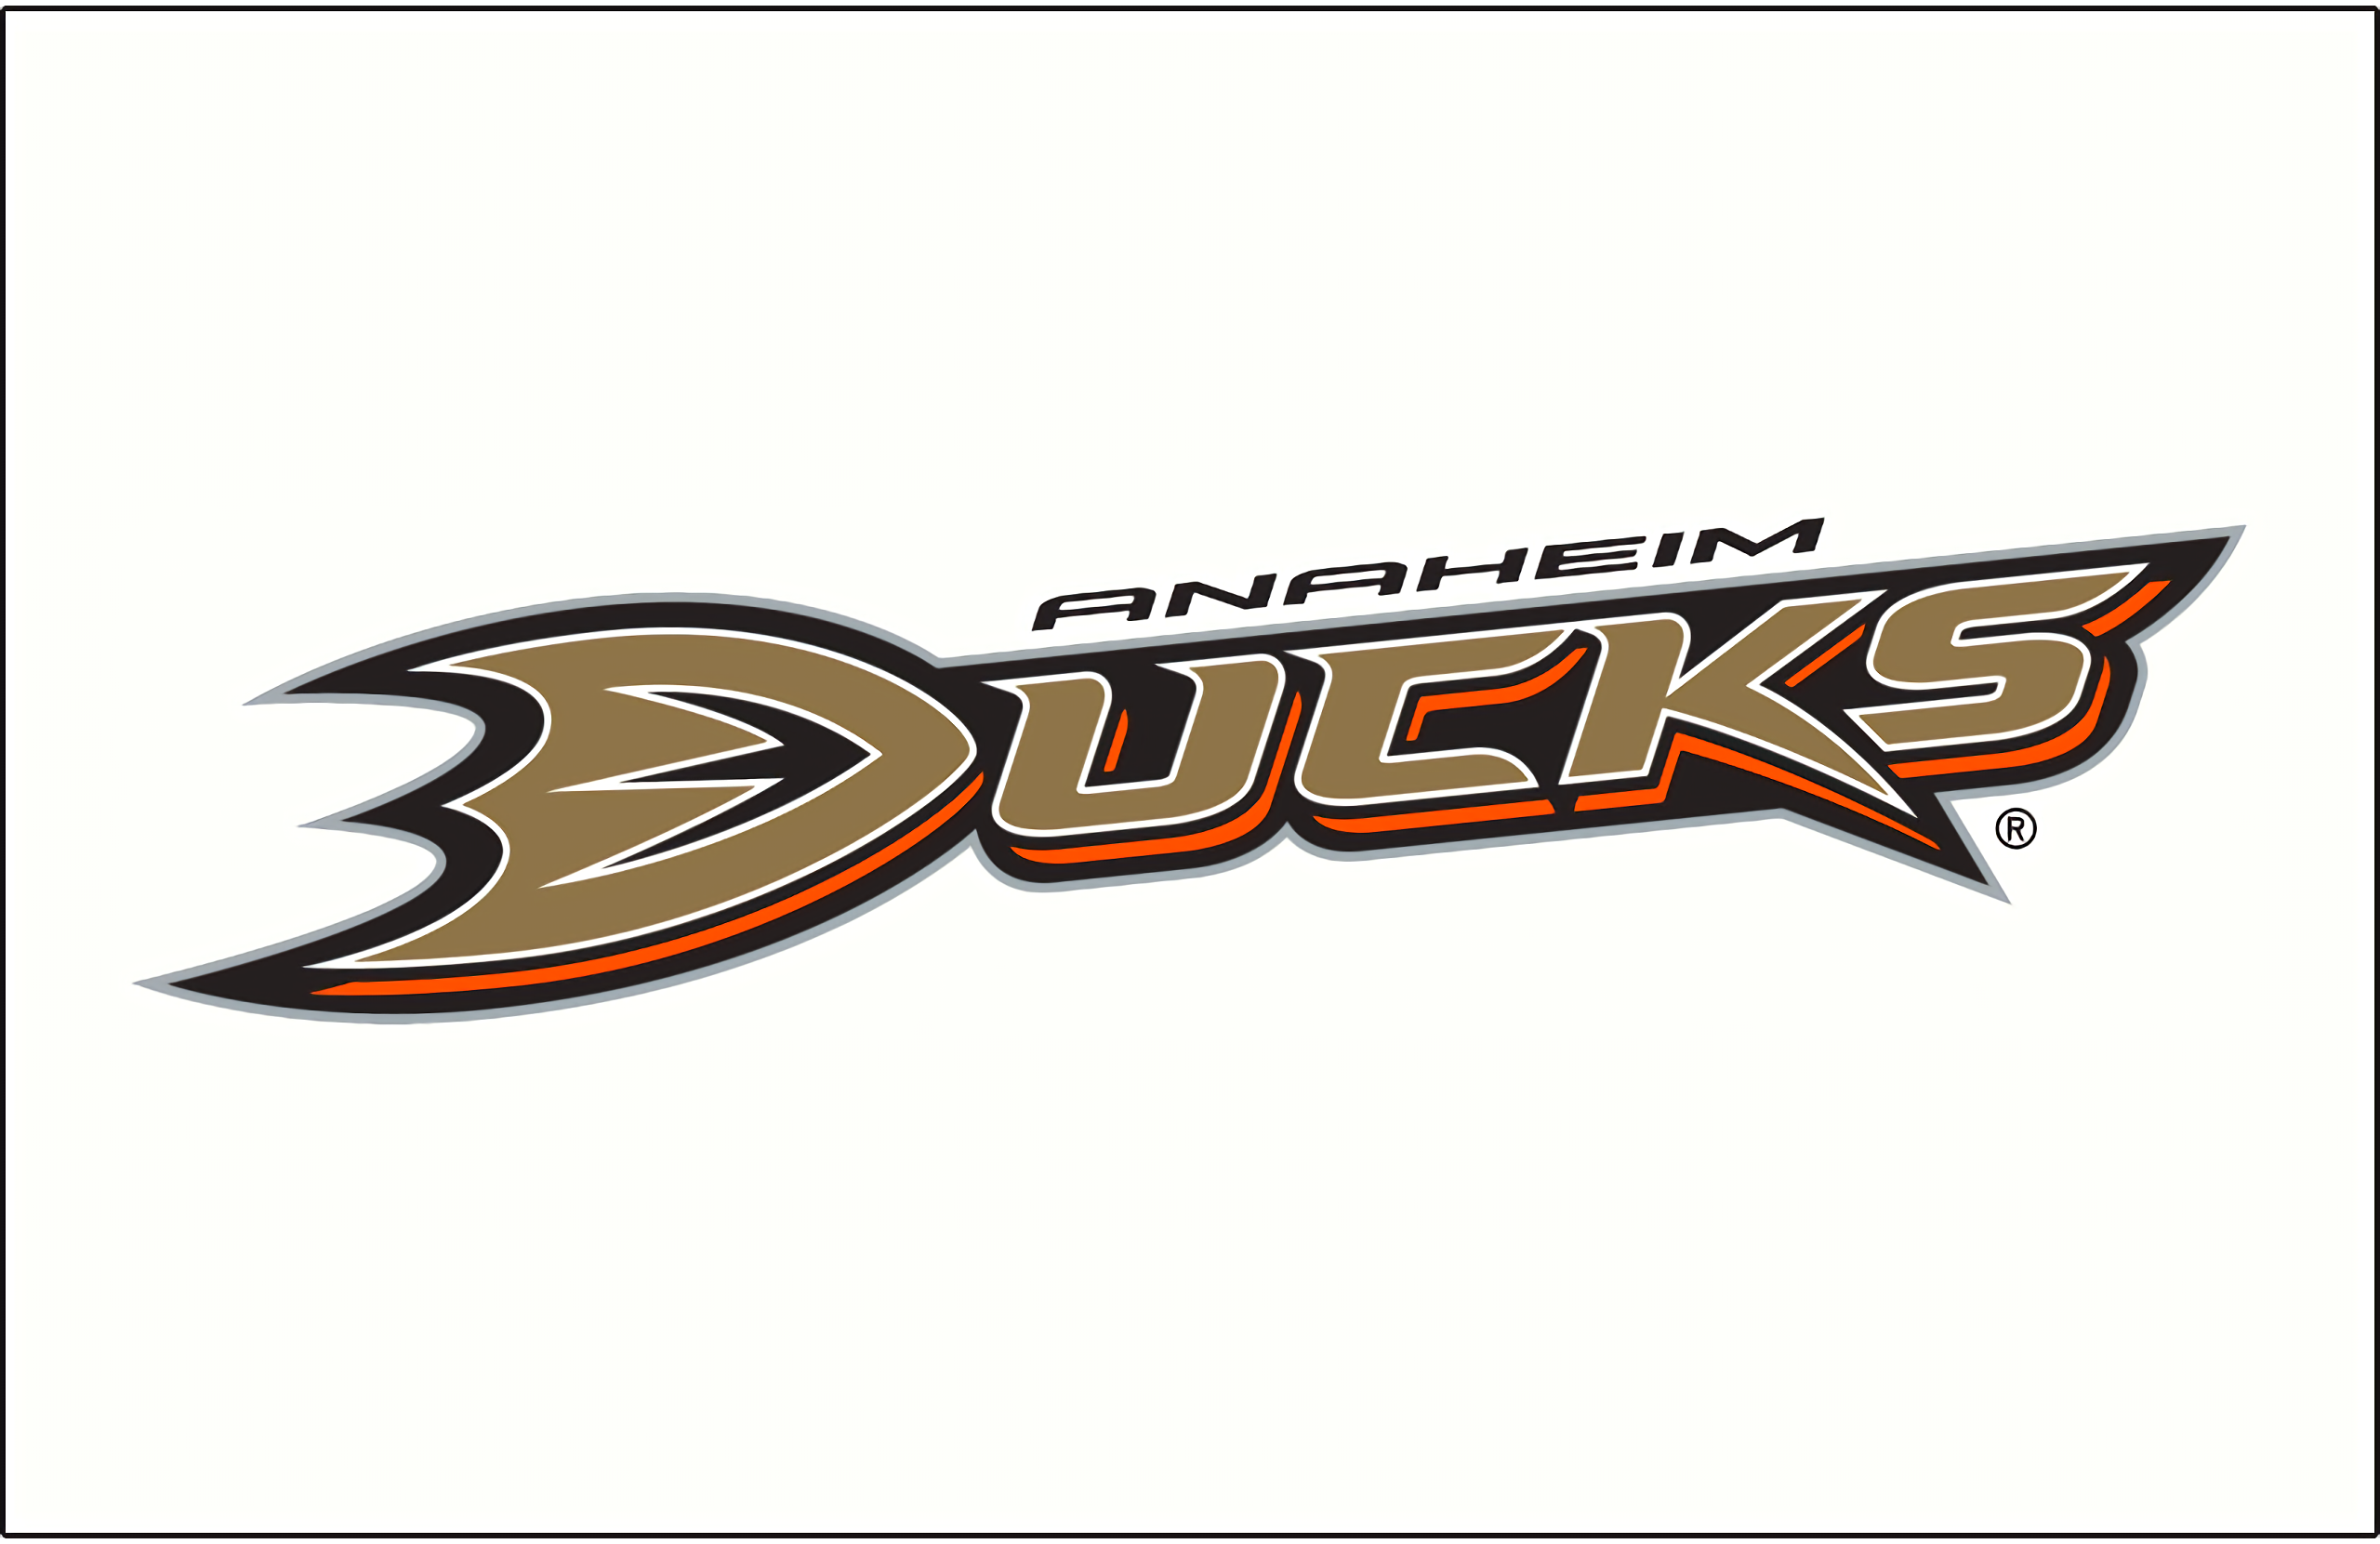 Anaheim Ducks Widescreen